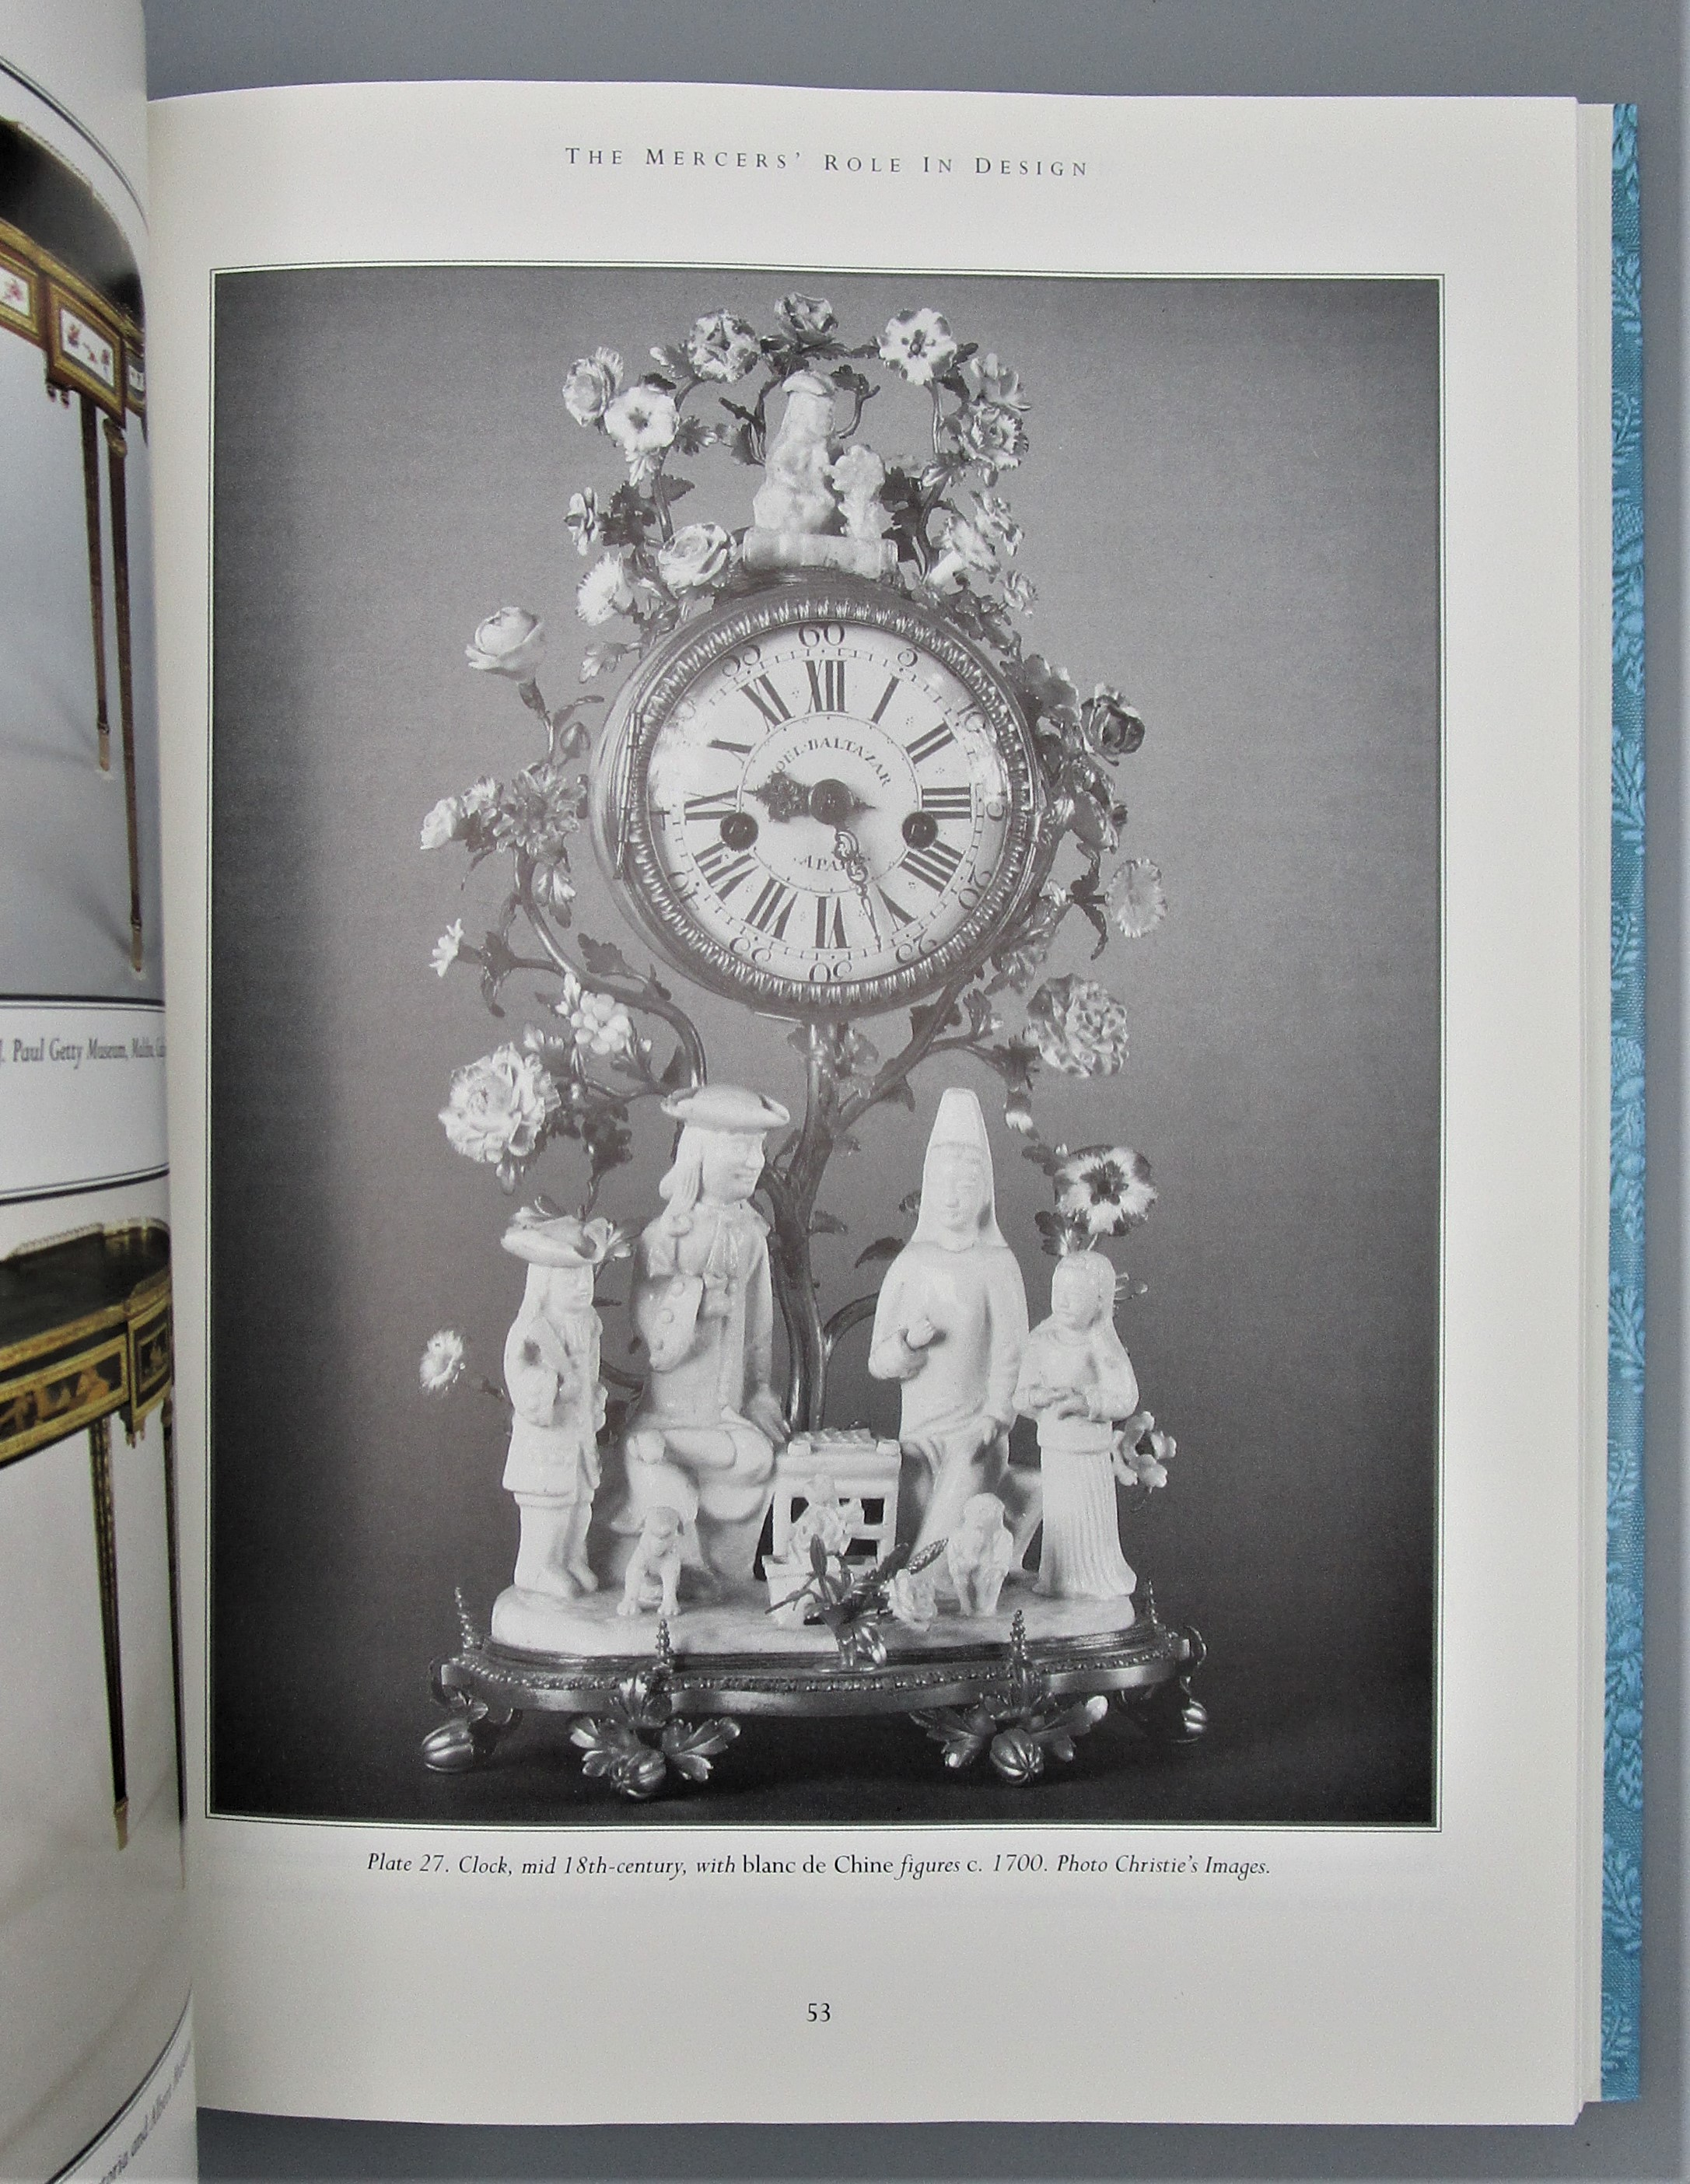 MERCHANTS AND LUXURY MARKETS: 18th C Paris, by Carolyn Sargentson - 1996